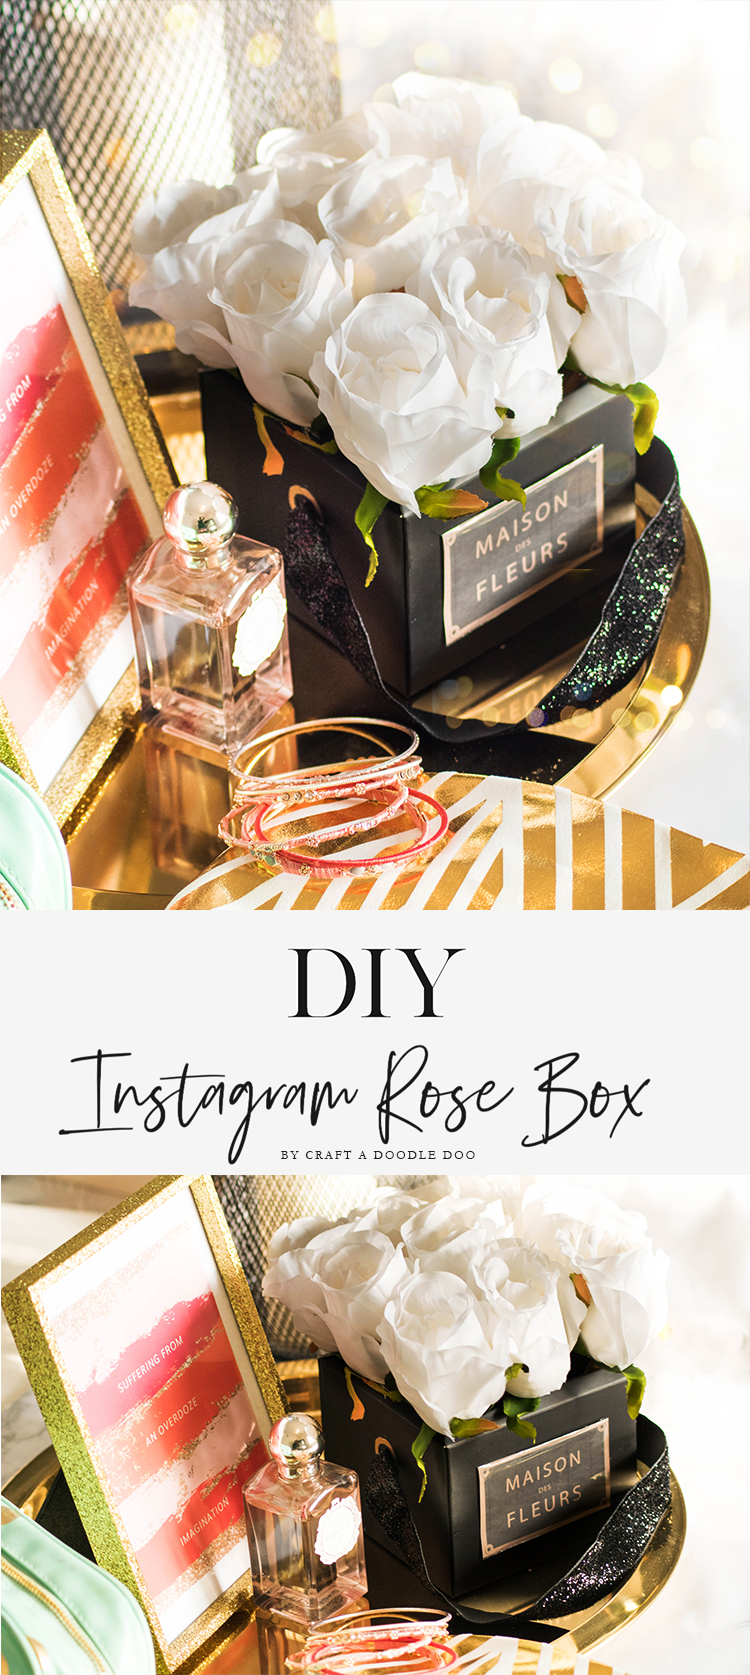 DIY Viral Instragram Rose flower Box #diy #rose #box #viral #home #decor #gifts Rose decor box to make your space and style look expensive!